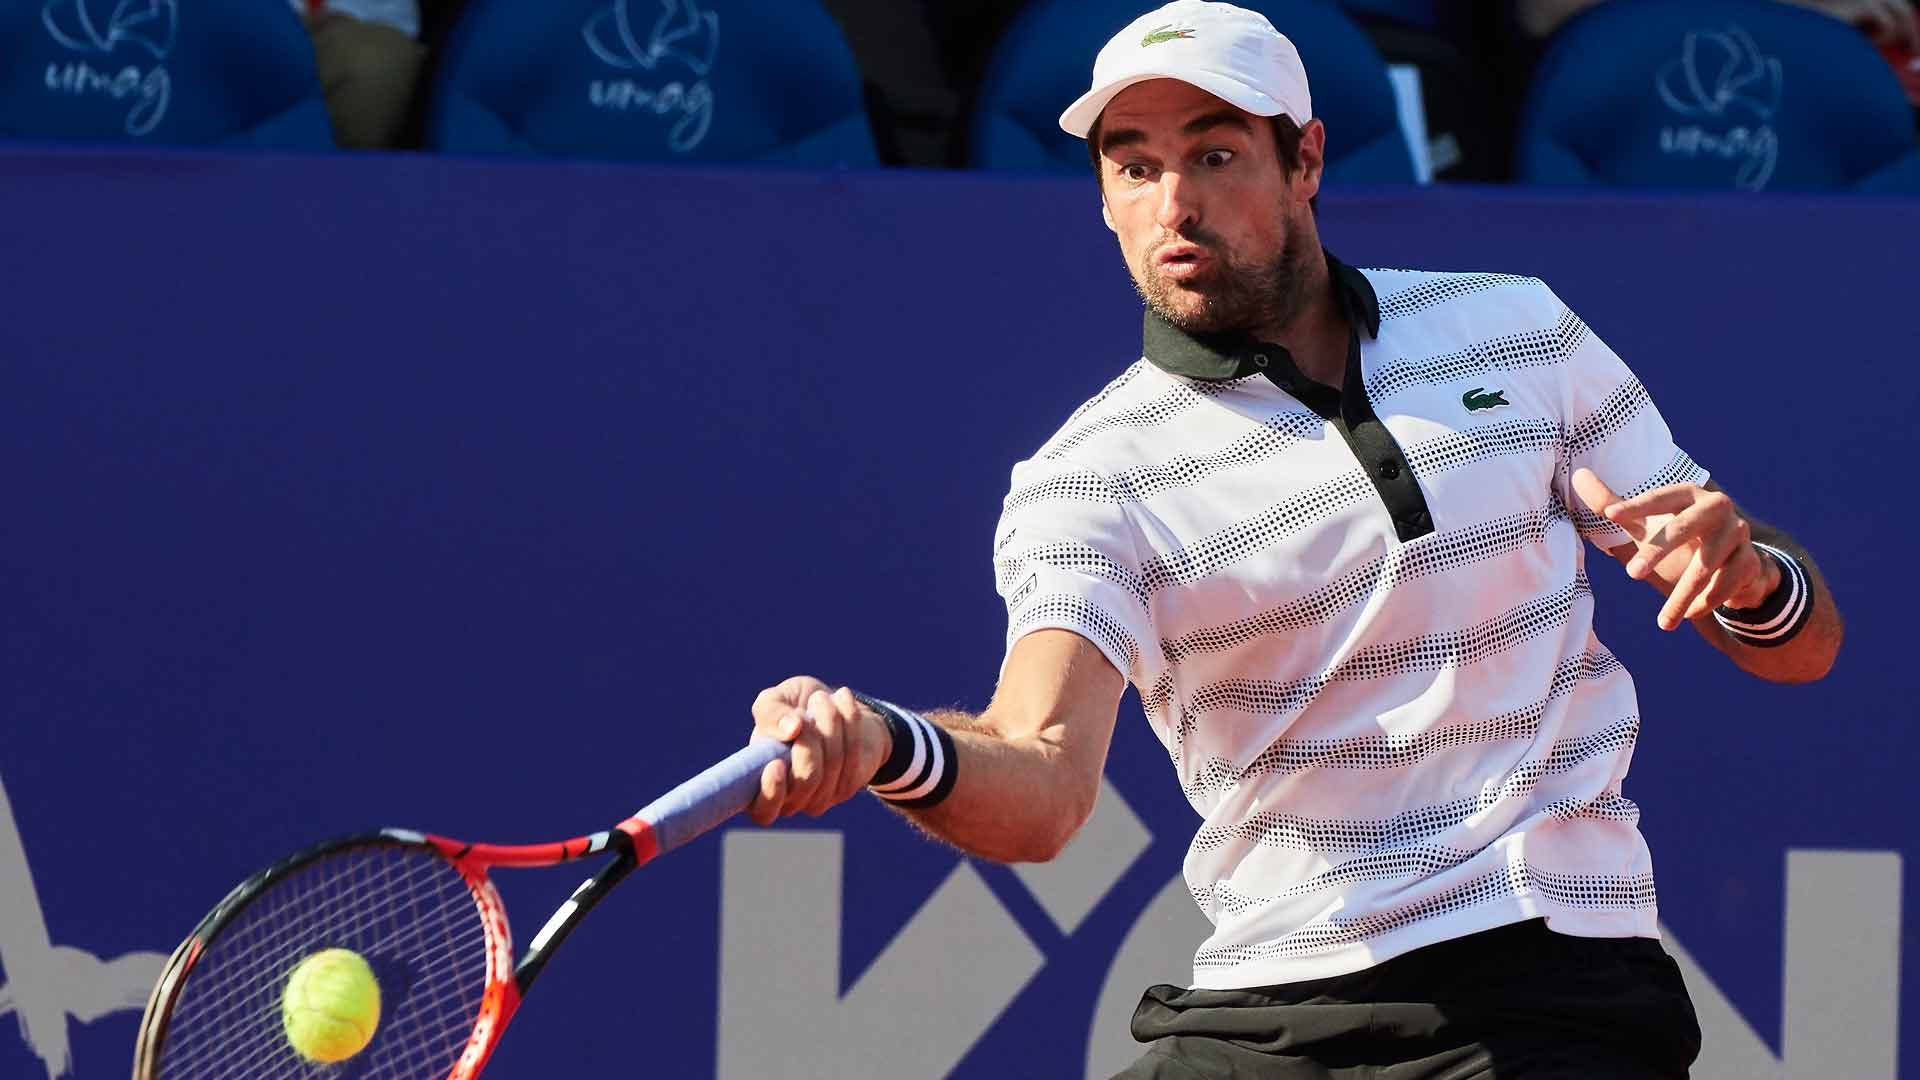 Jeremy Chardy wasted no time advancing to the quarter-finals on Wednesday in Umag.